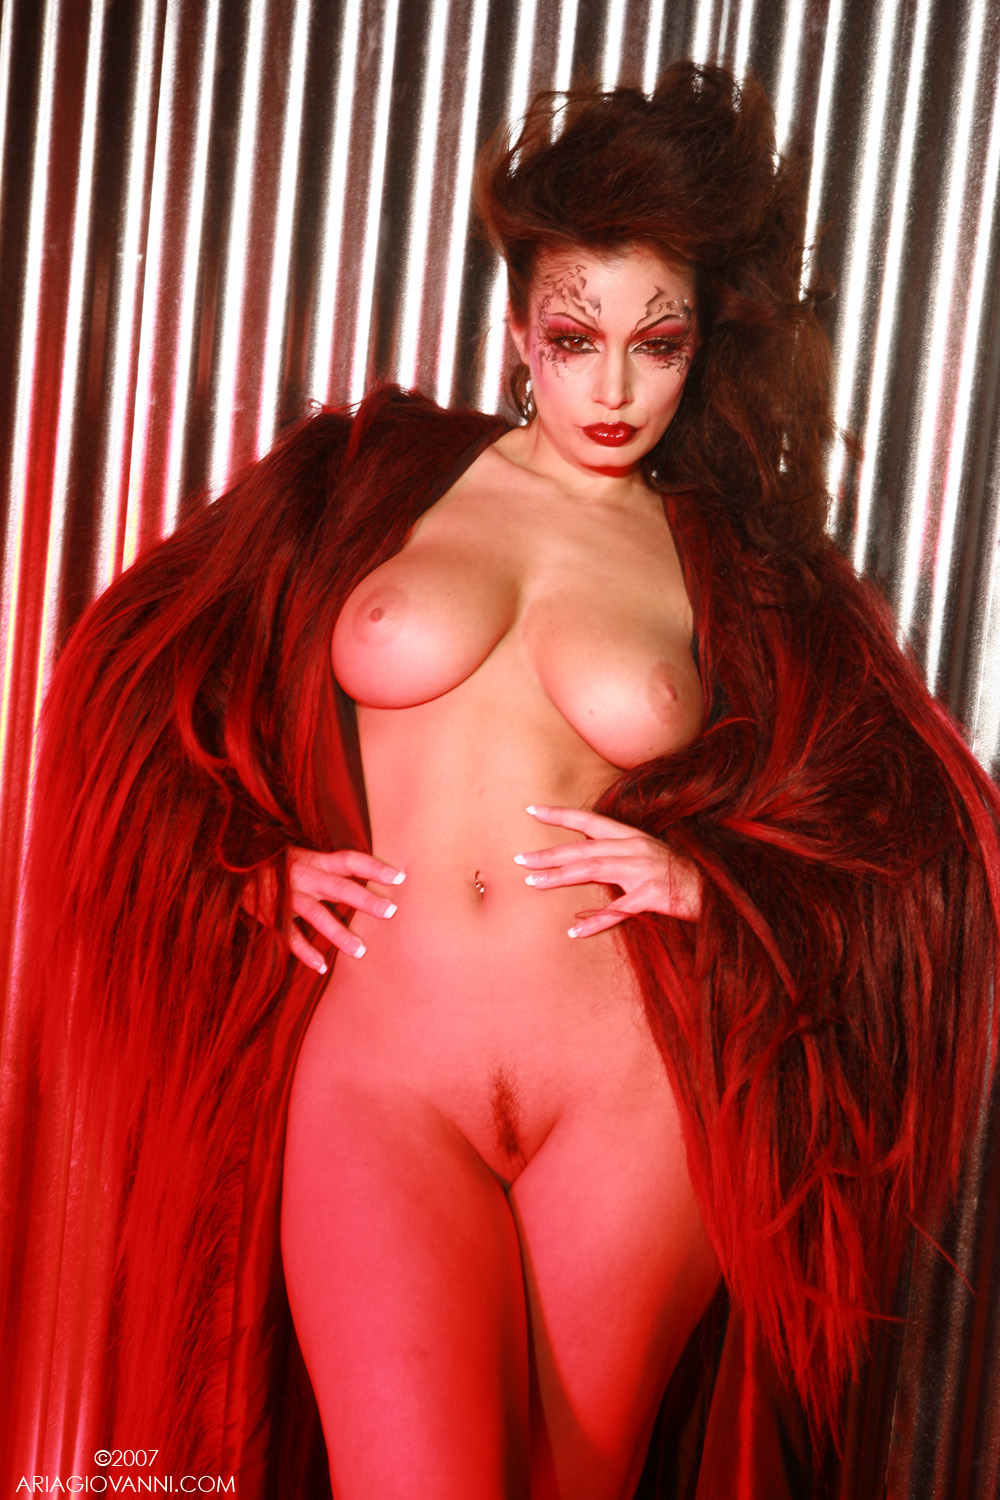 Red-Hot Aria Giovanni